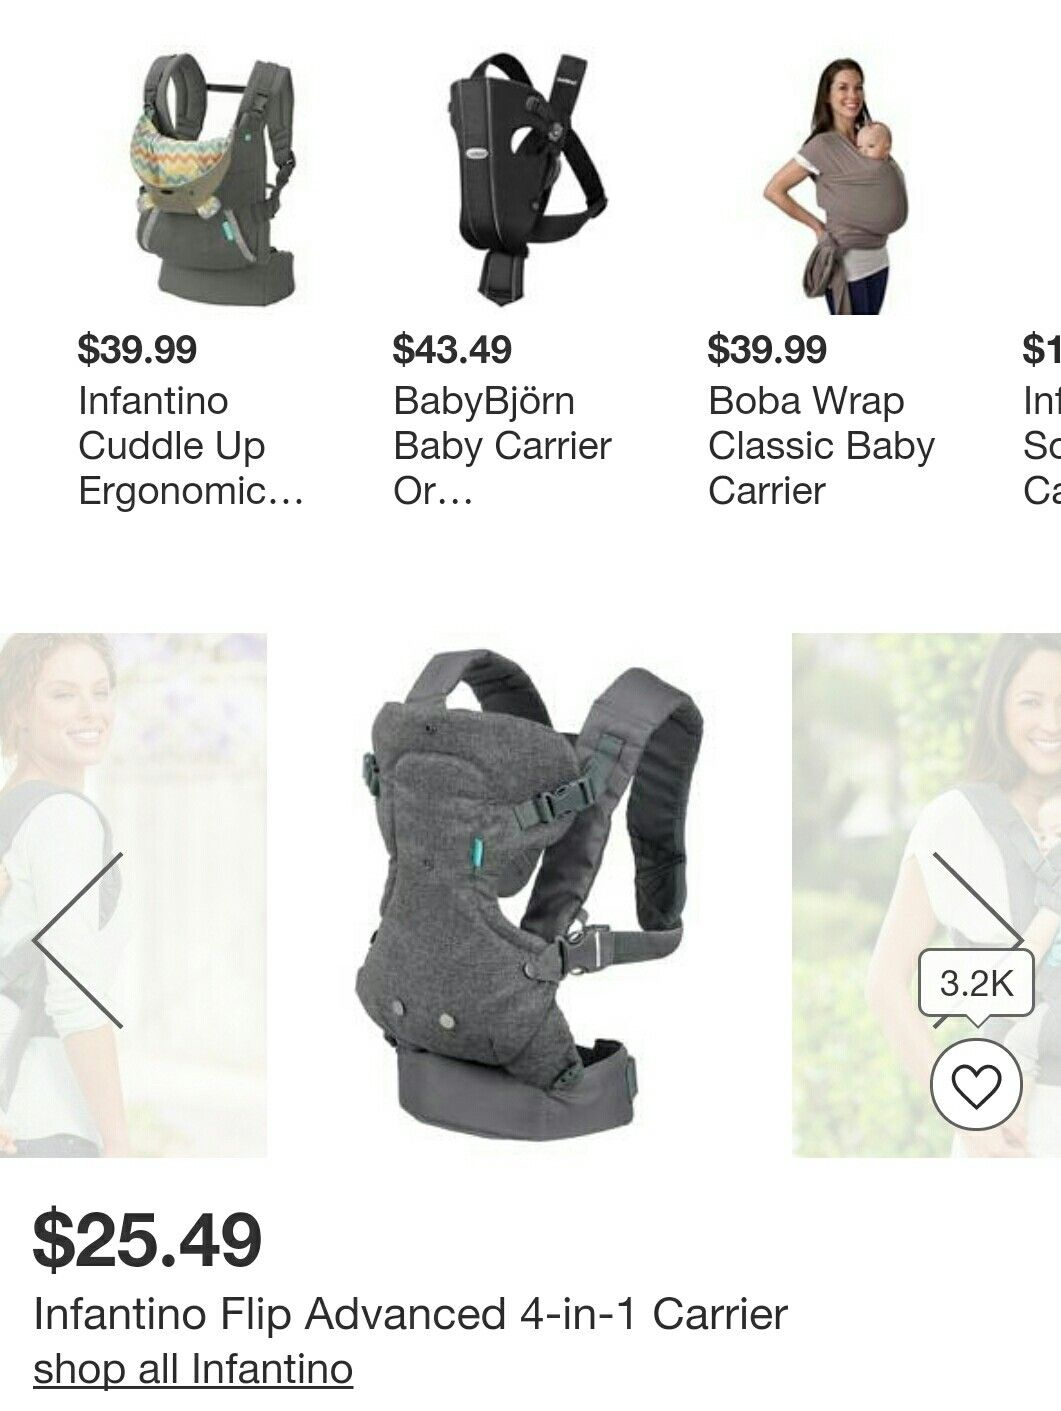 Infantino Flip Advanced 4 In 1 Baby Carrier Baby Gear For Dads